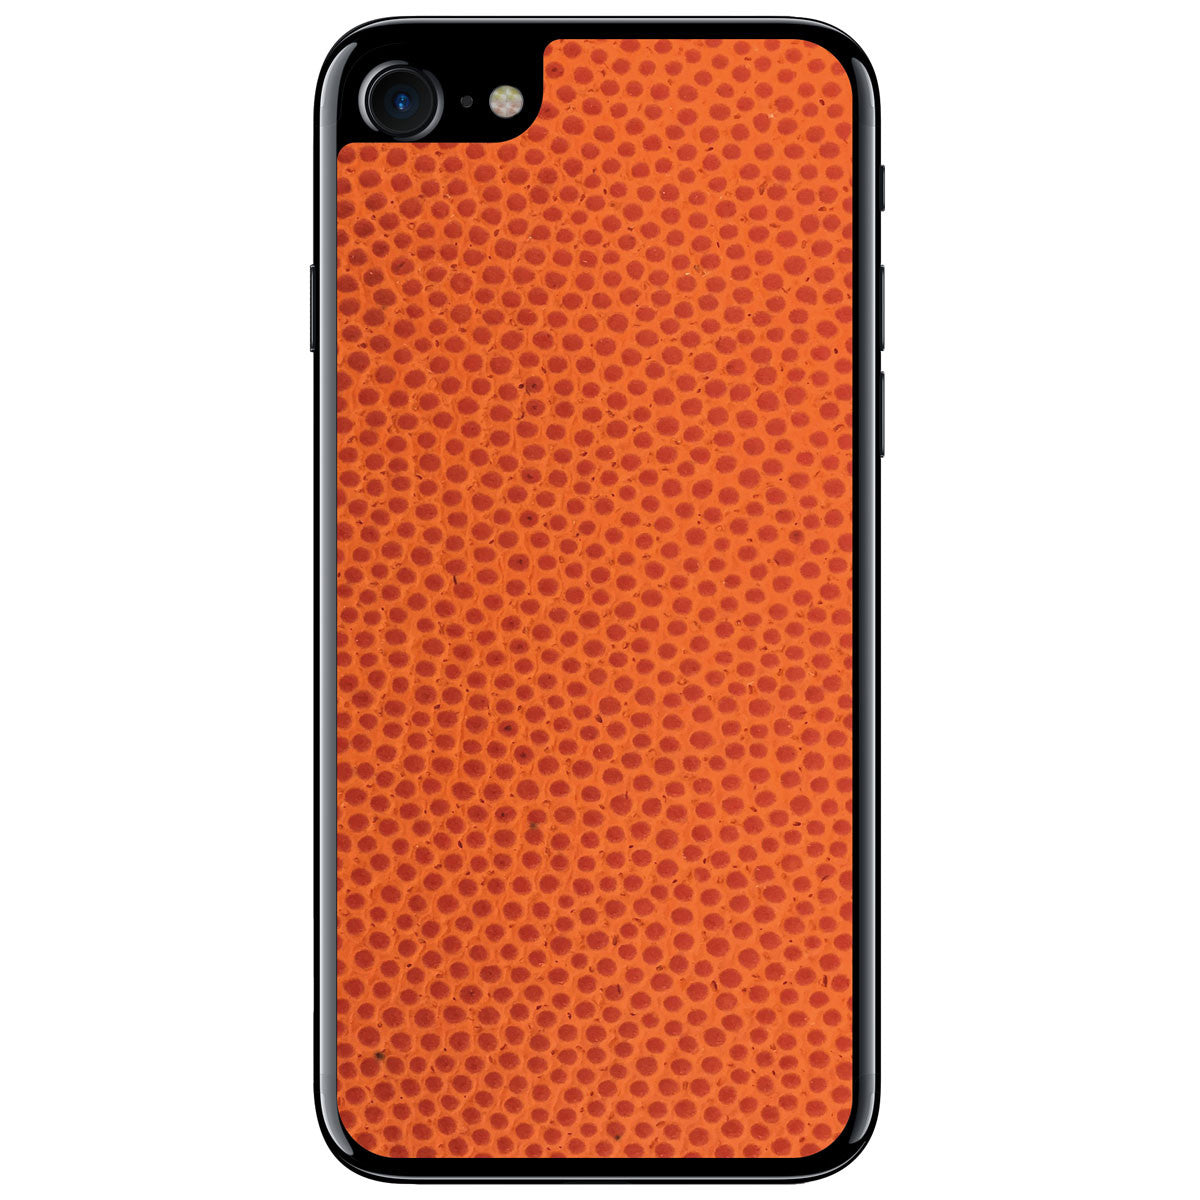 Horween Basketball iPhone 8 Leather Skin